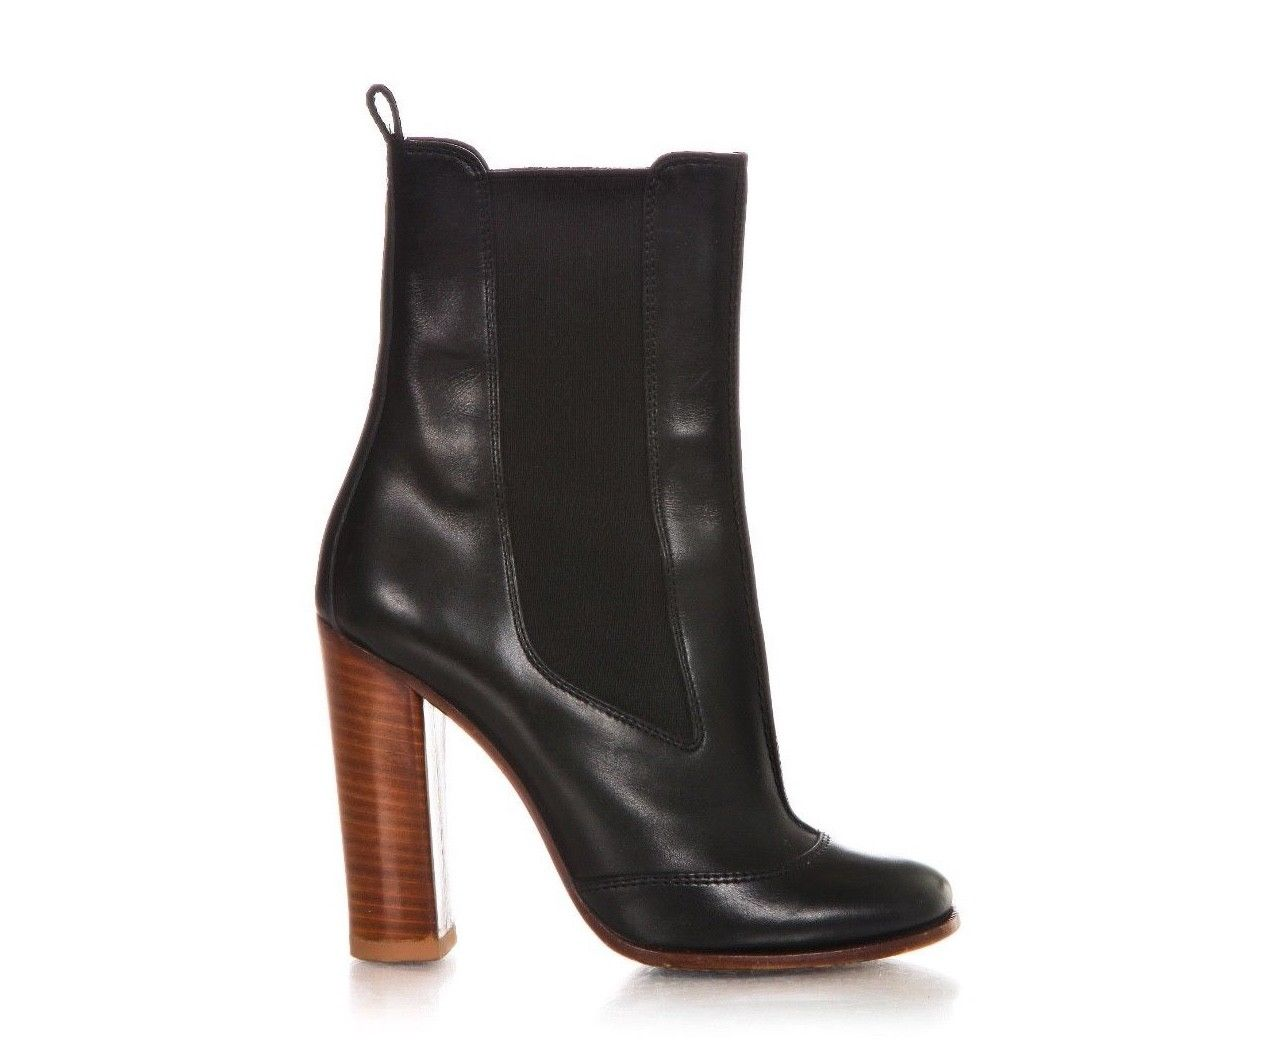 Celine Black Leather Boots Elastic Wood Block Heel Size 37 Style